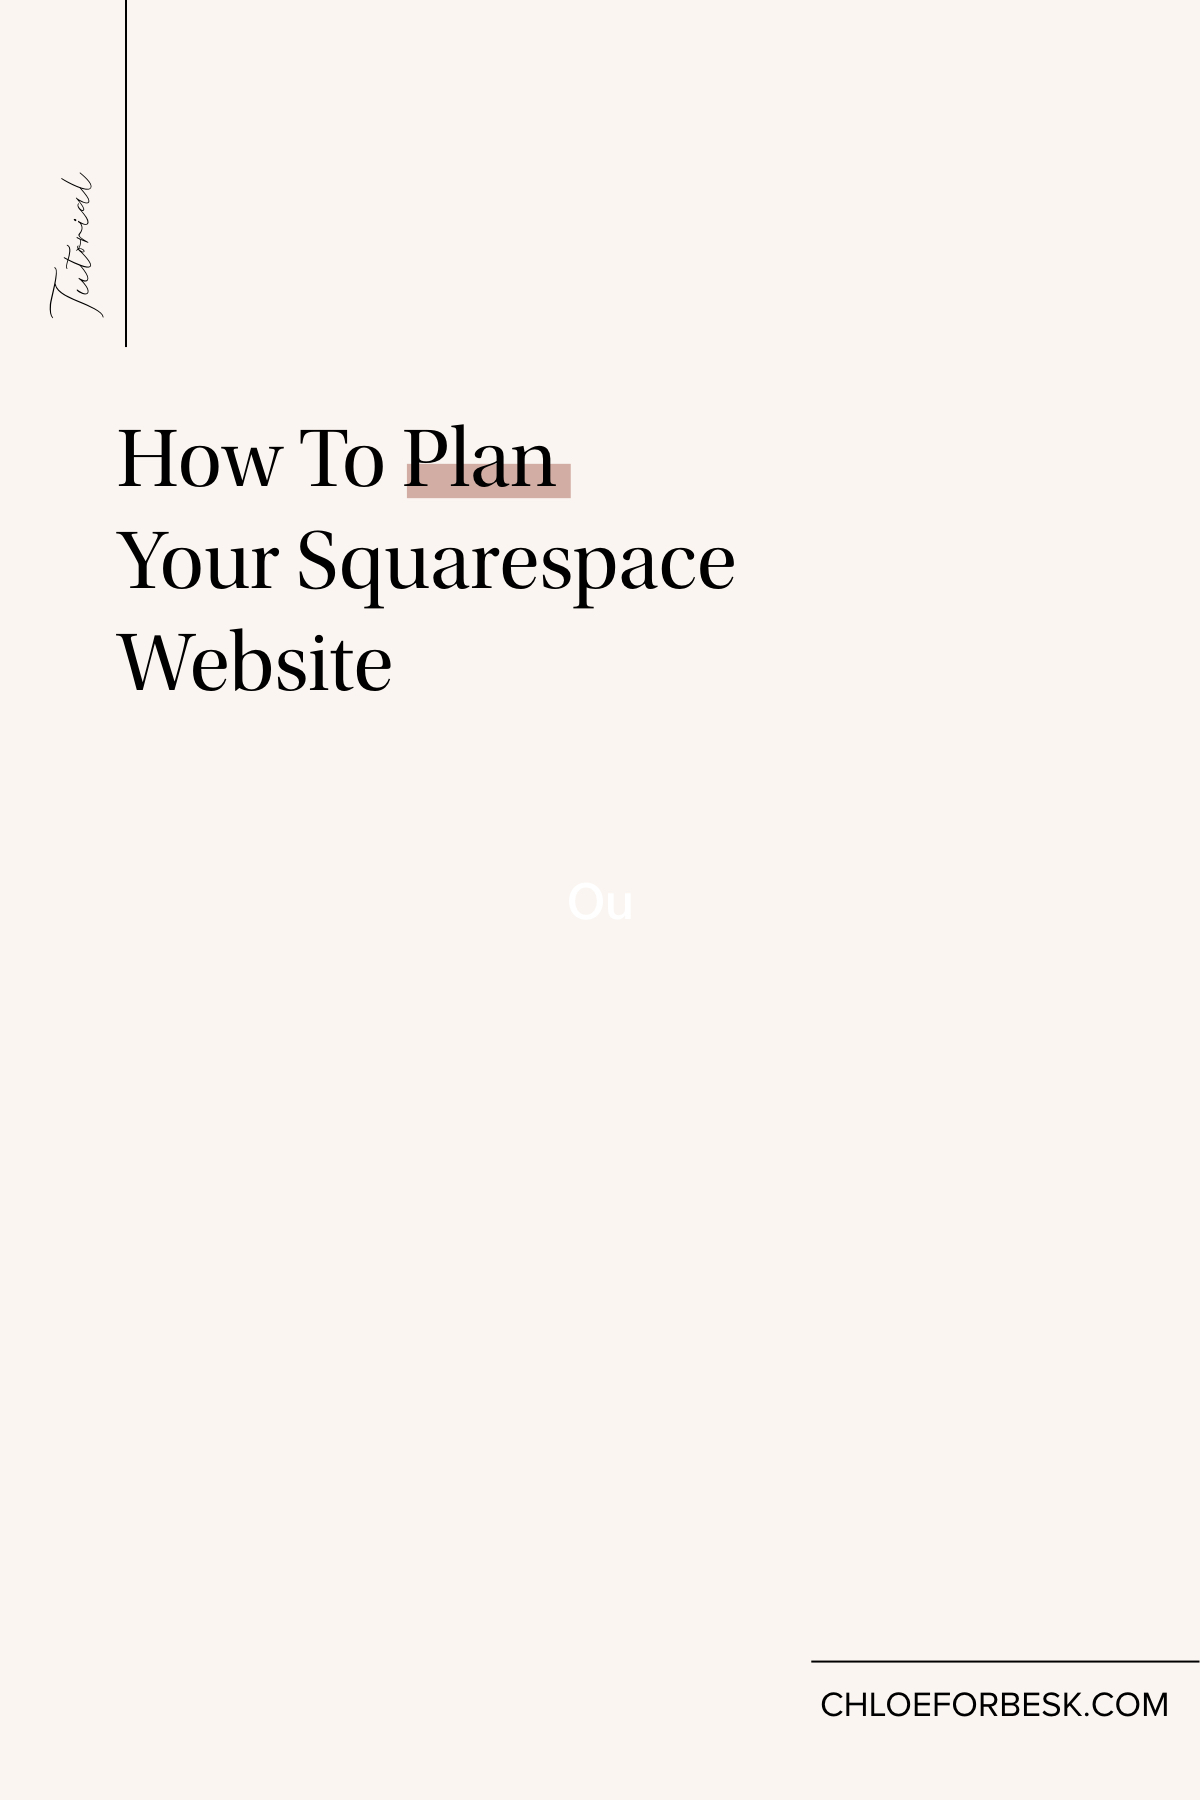 How To Plan Your Squarespace Website.002.jpeg